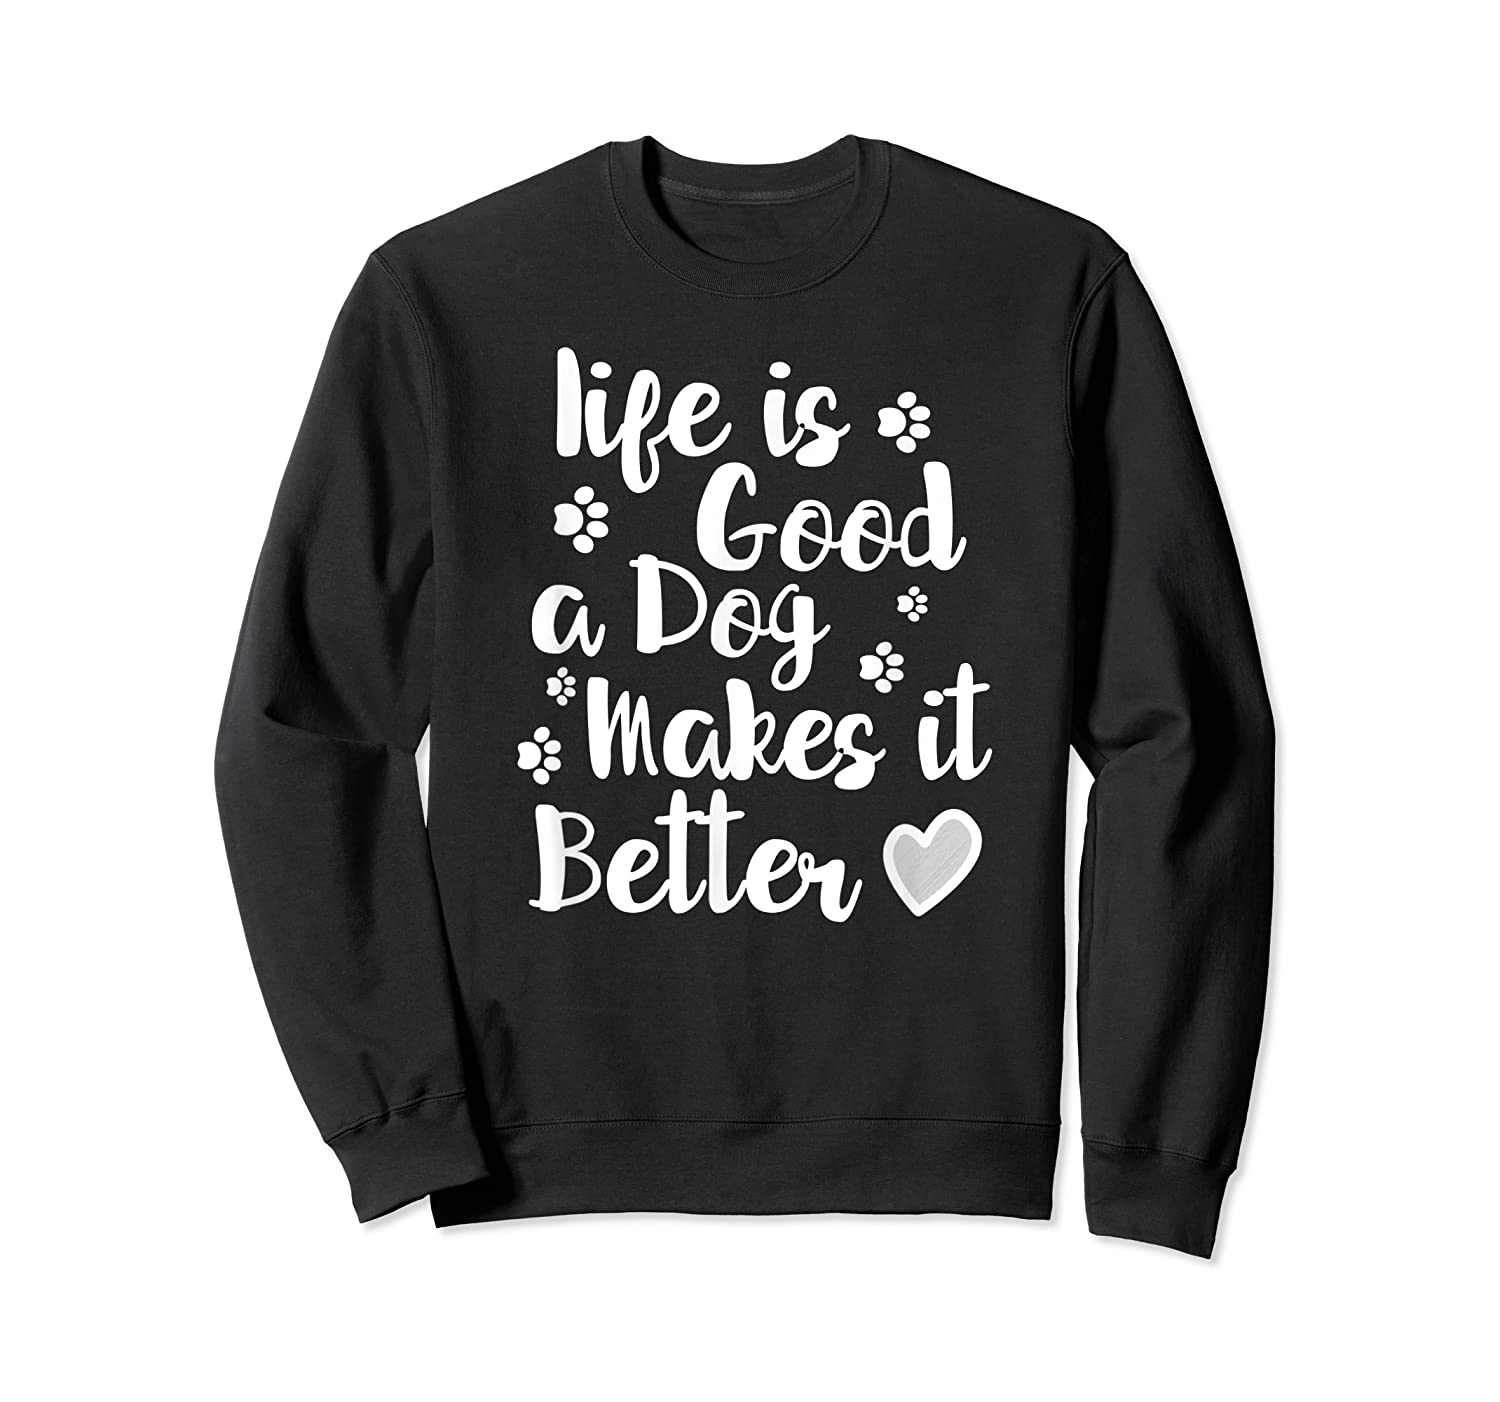 A Dog Makes It Better For Dog Lovers Tshirt T-shirt Crewneck Sweater